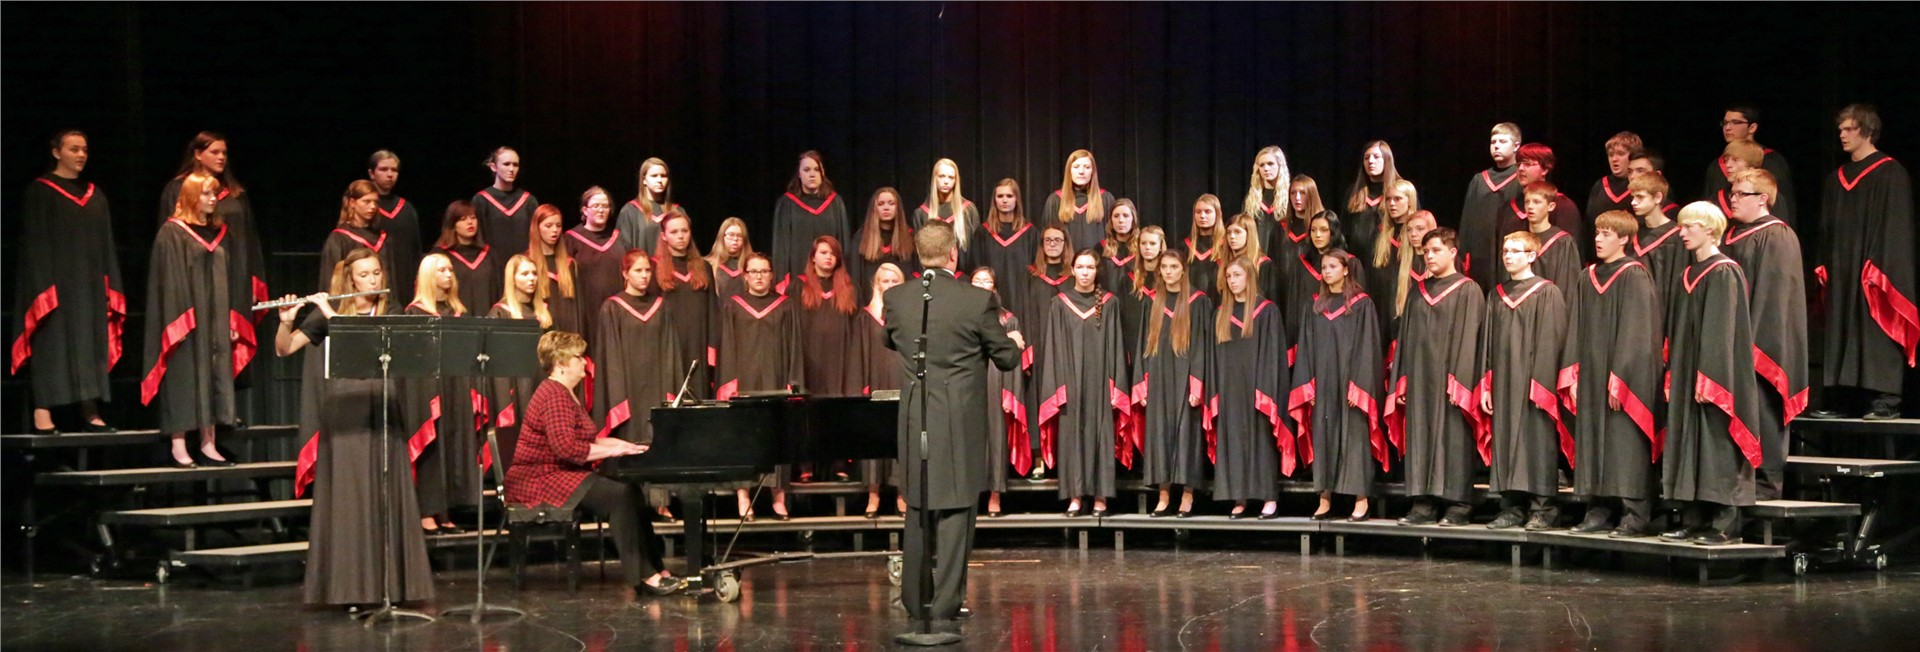 High school student choir singing on risers